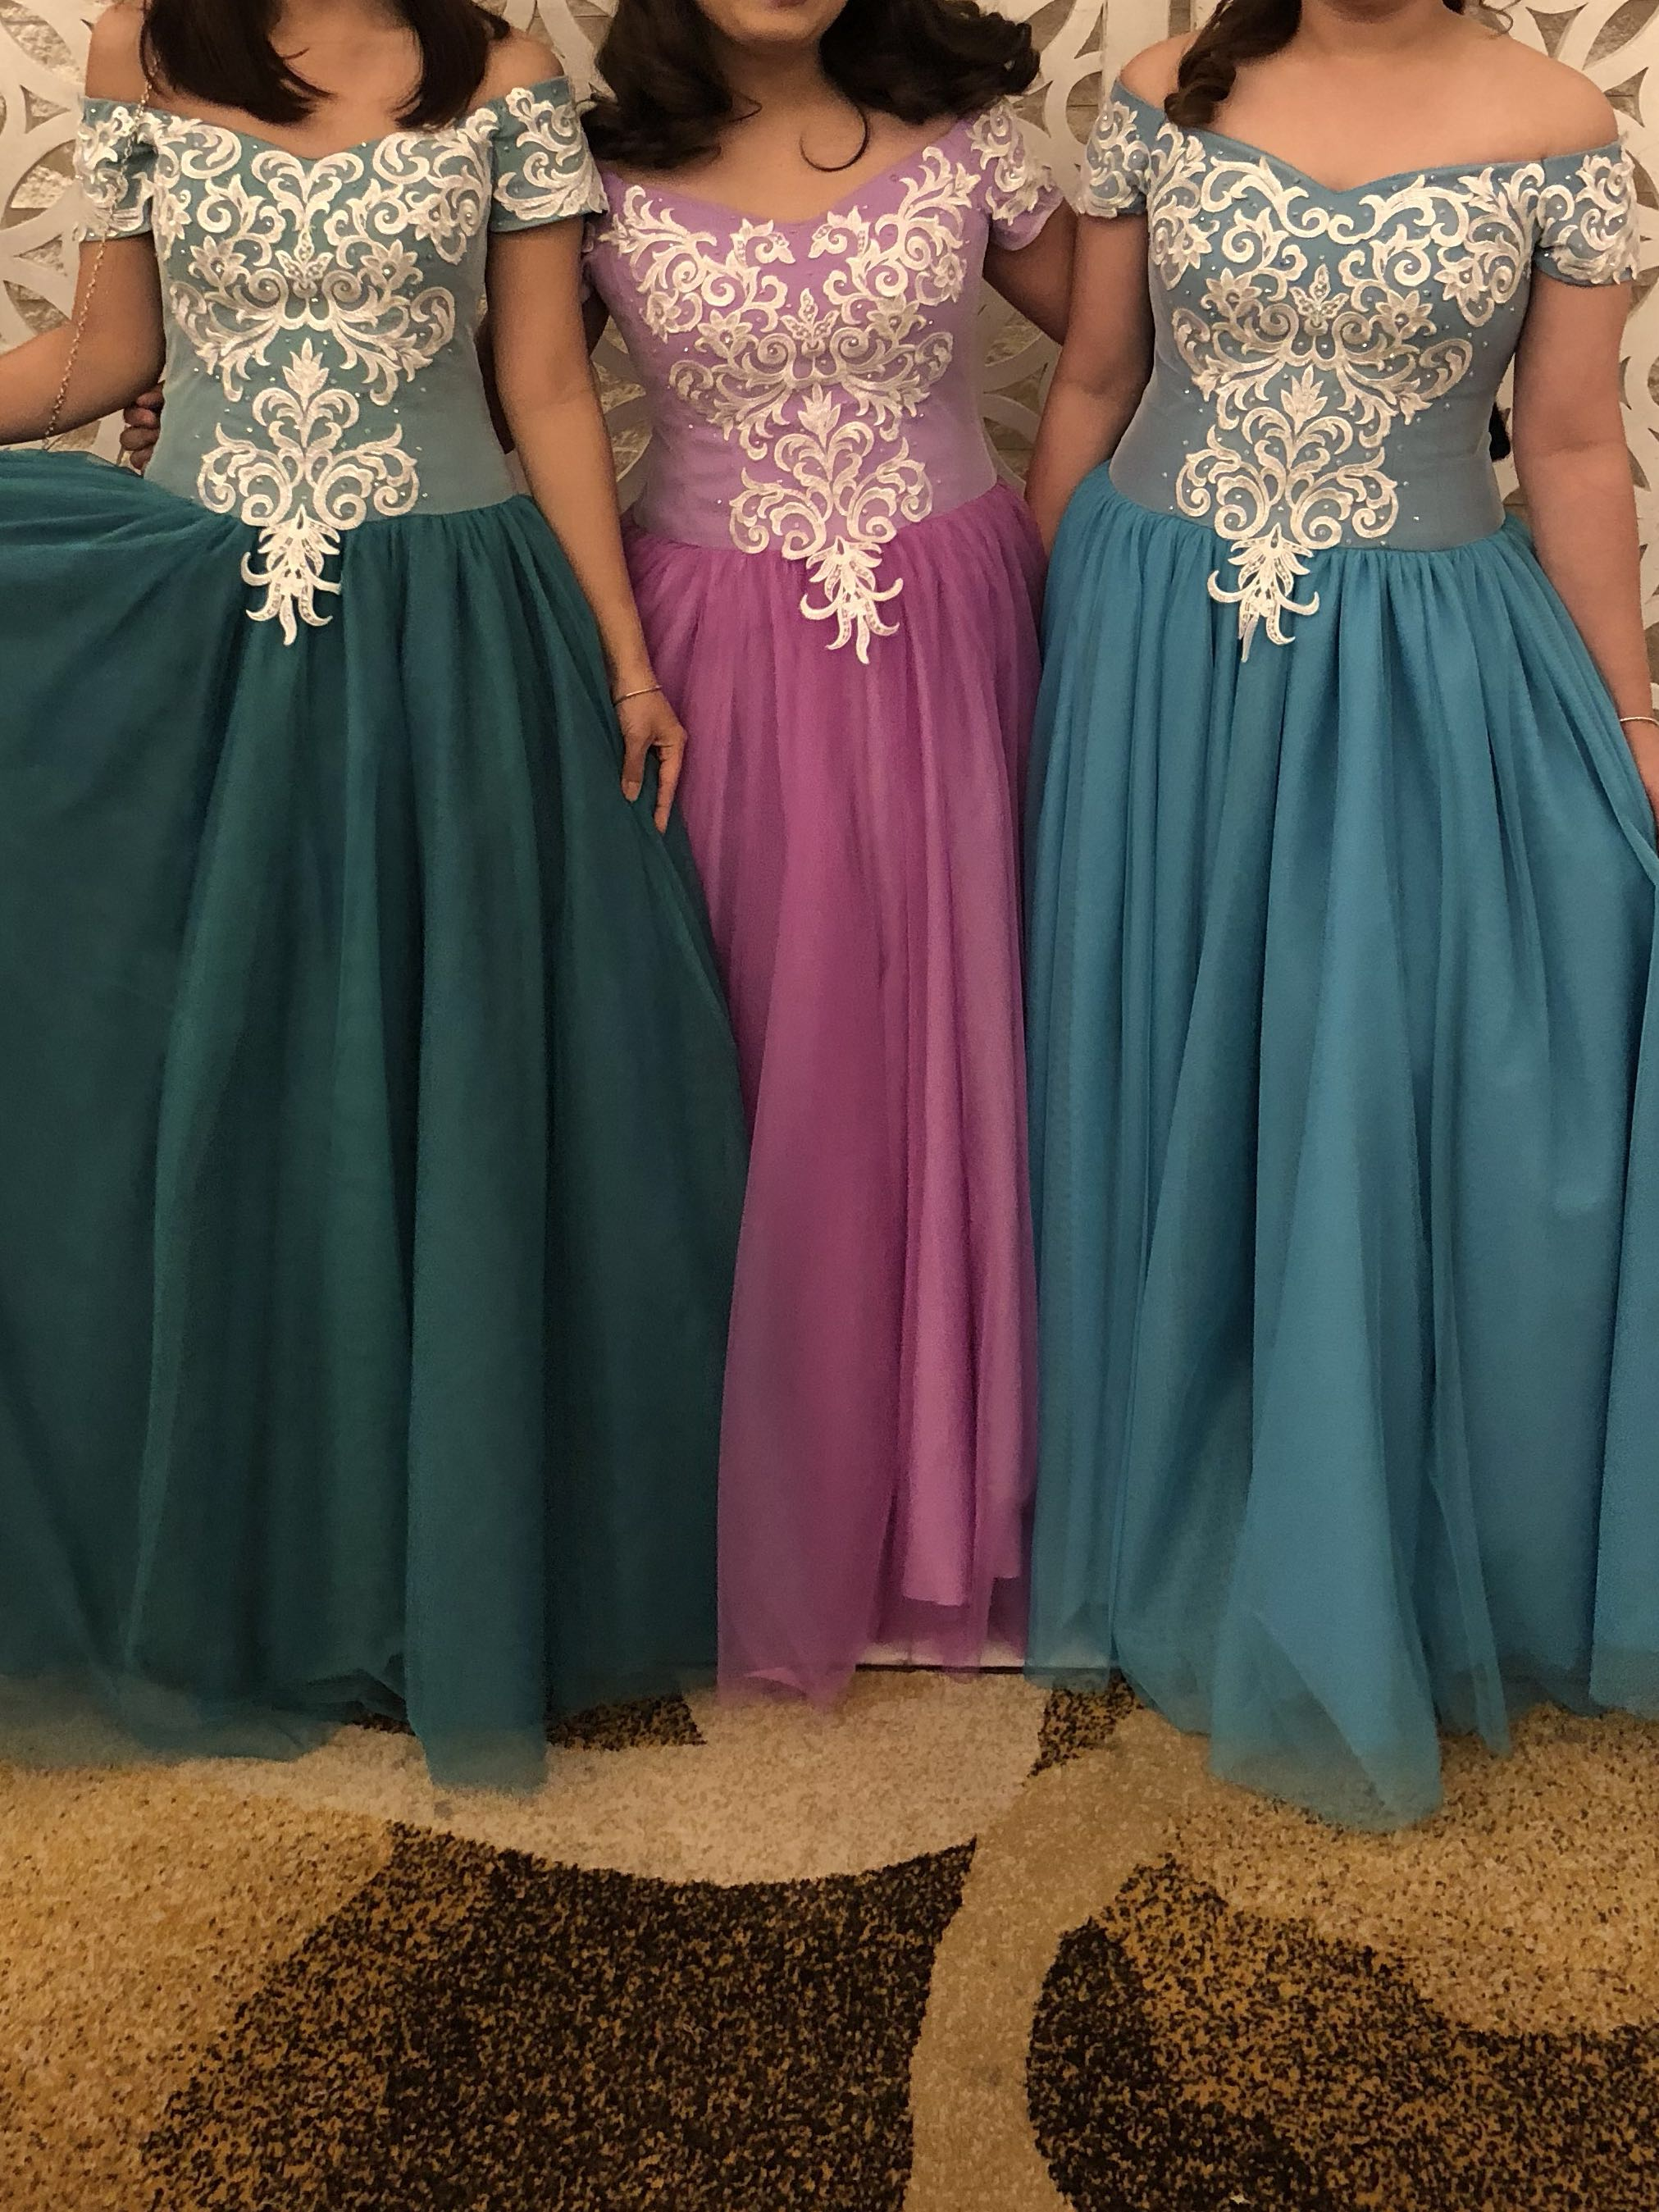 GOWNS FOR RENT